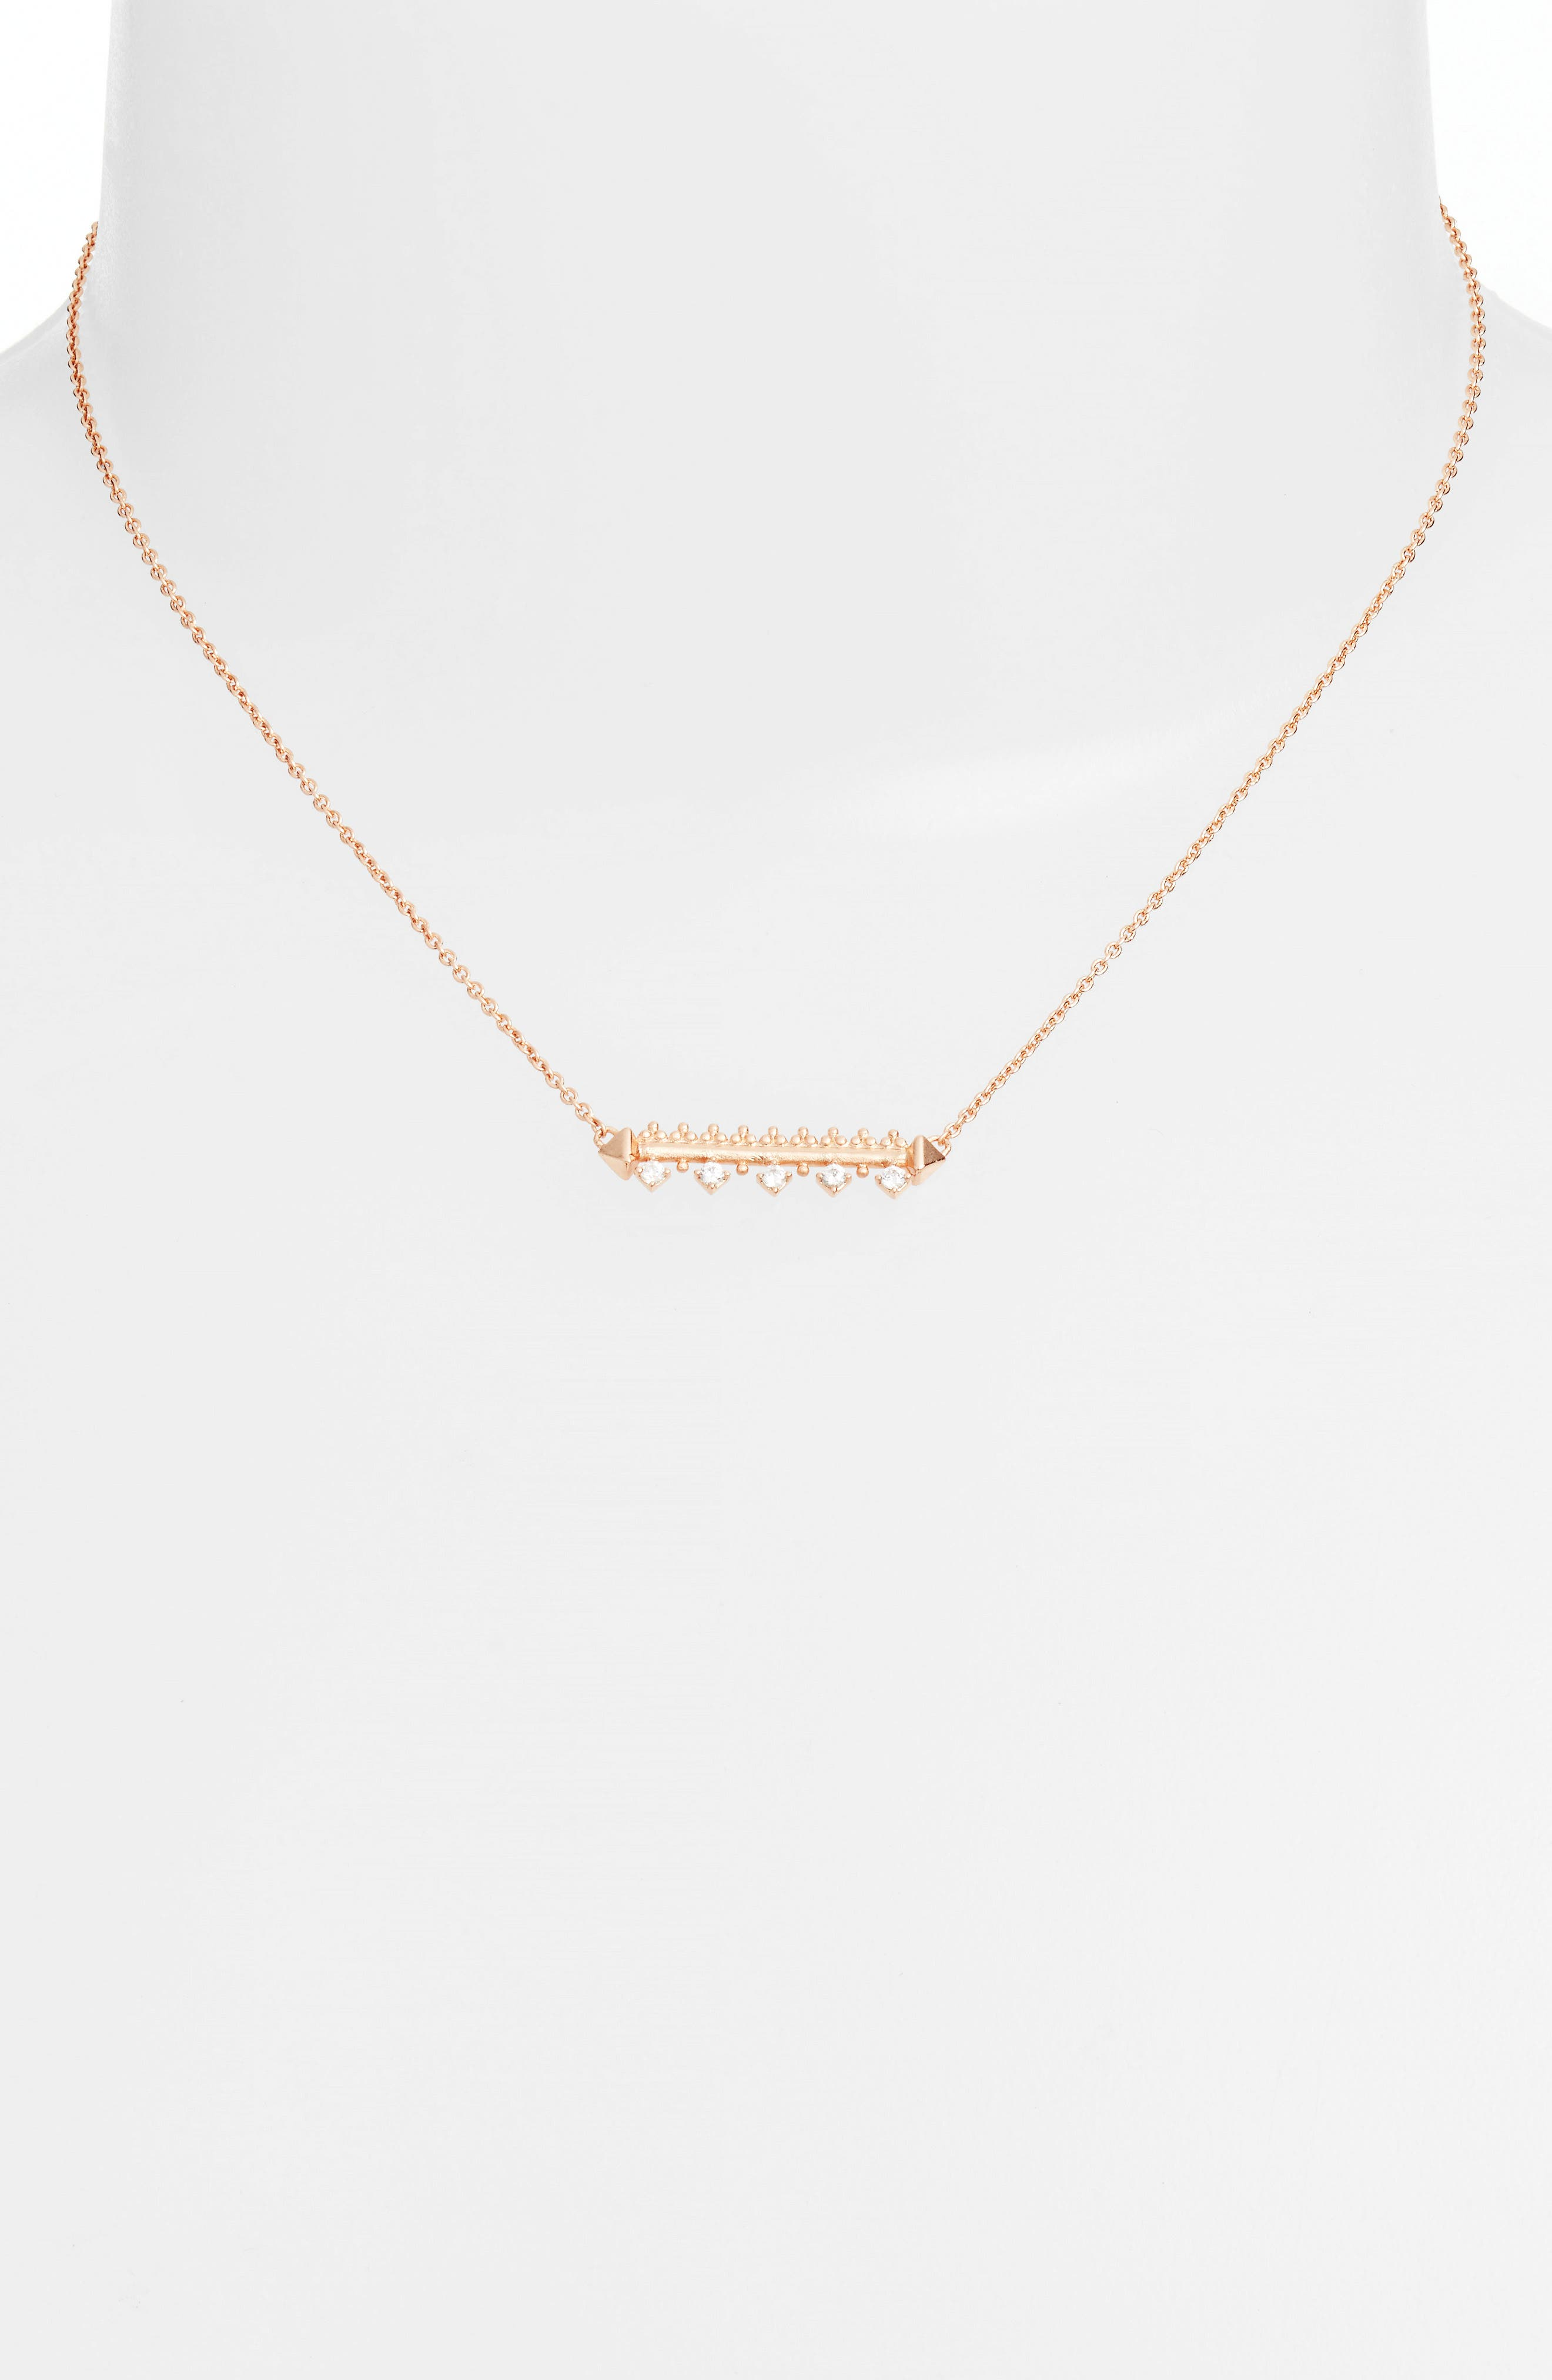 Kendra Scott Anissa Bar Pendant Necklace